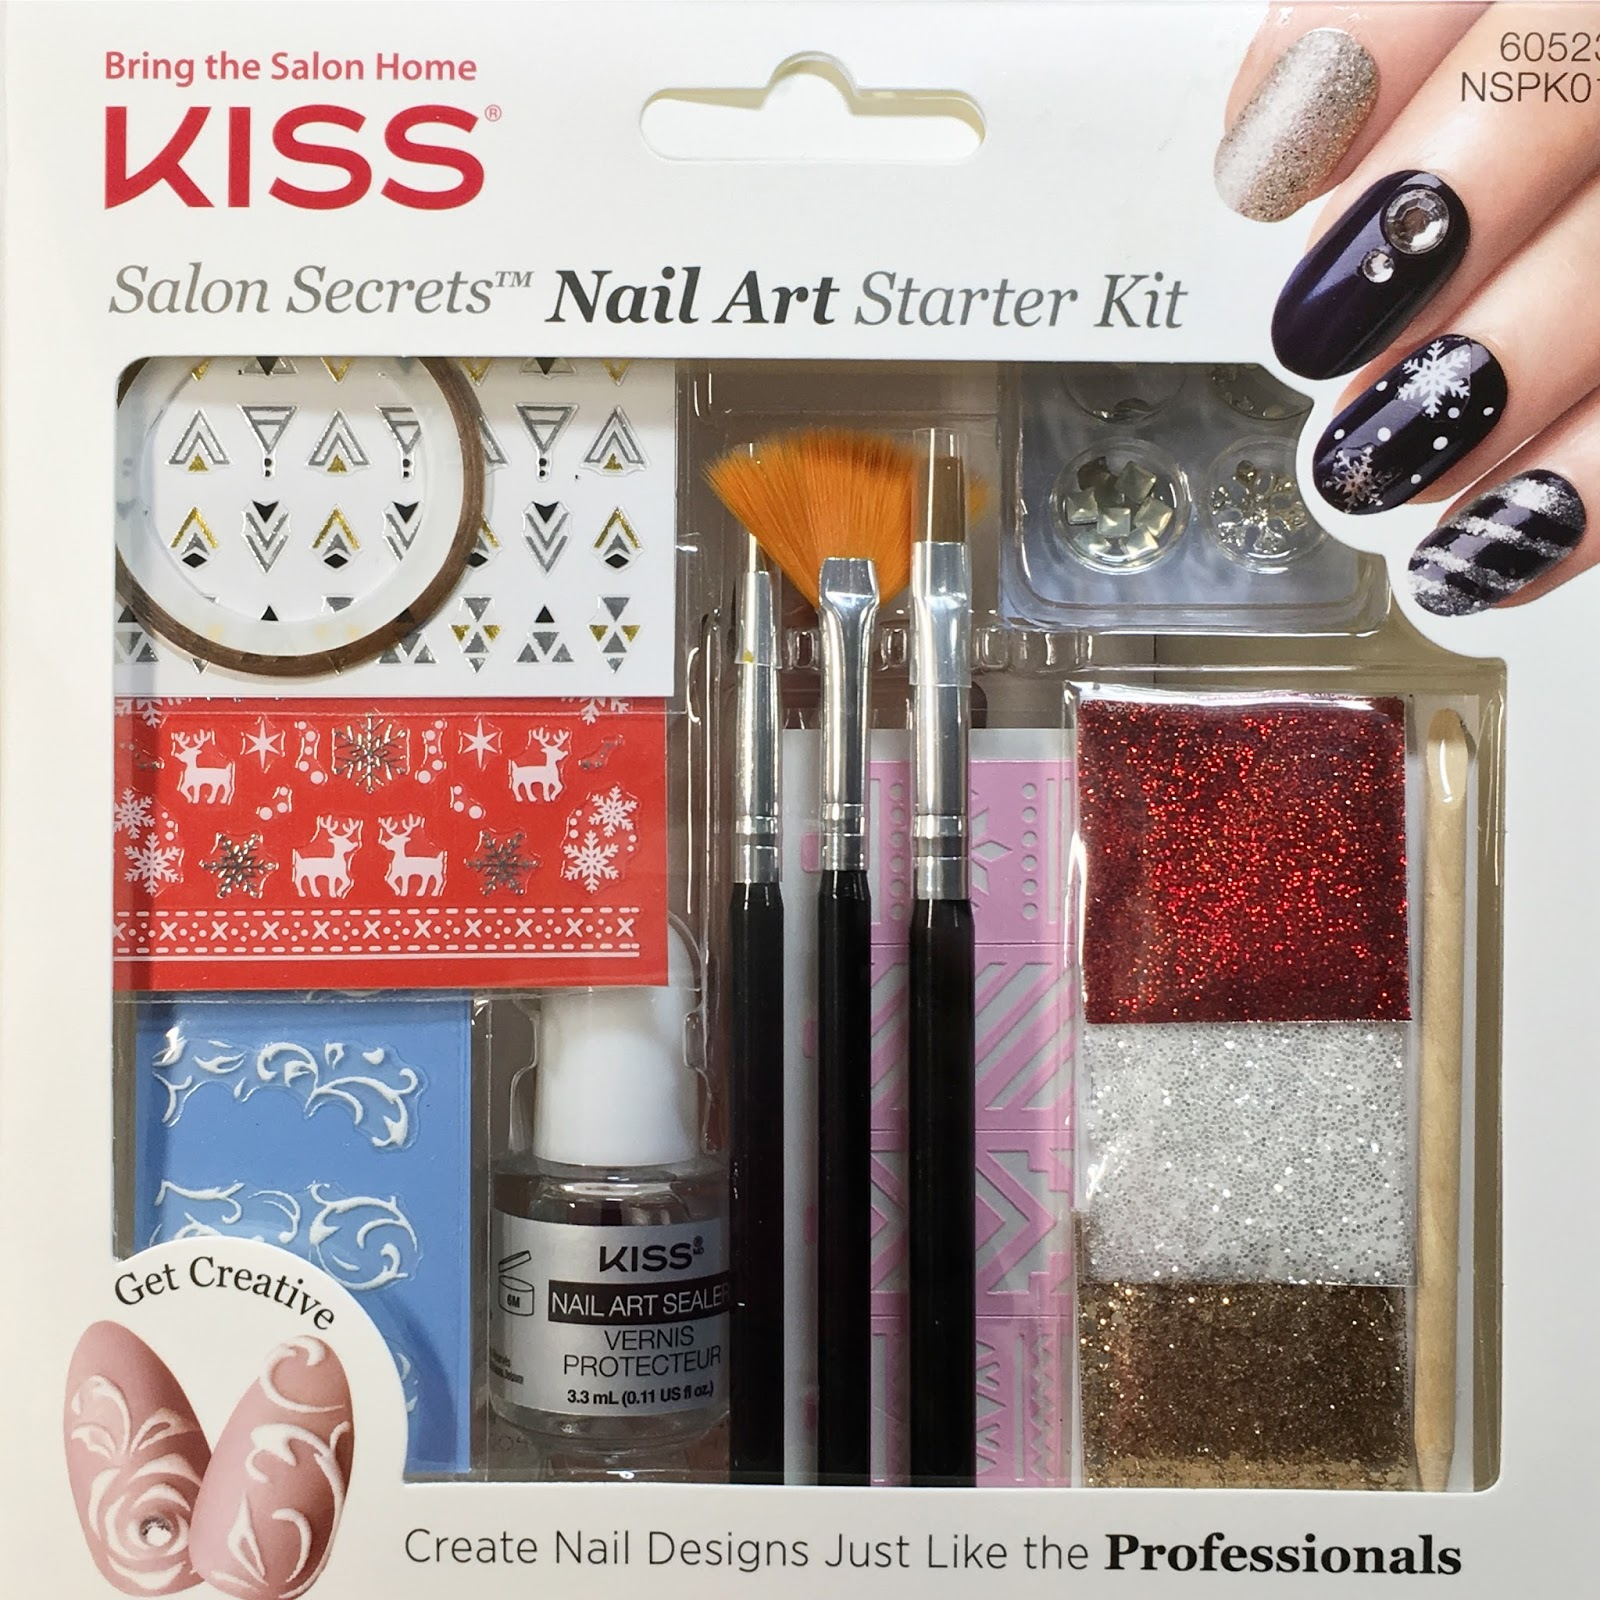 Nail Experiments: KISS Salon Secrets Nail Art Starter Kit